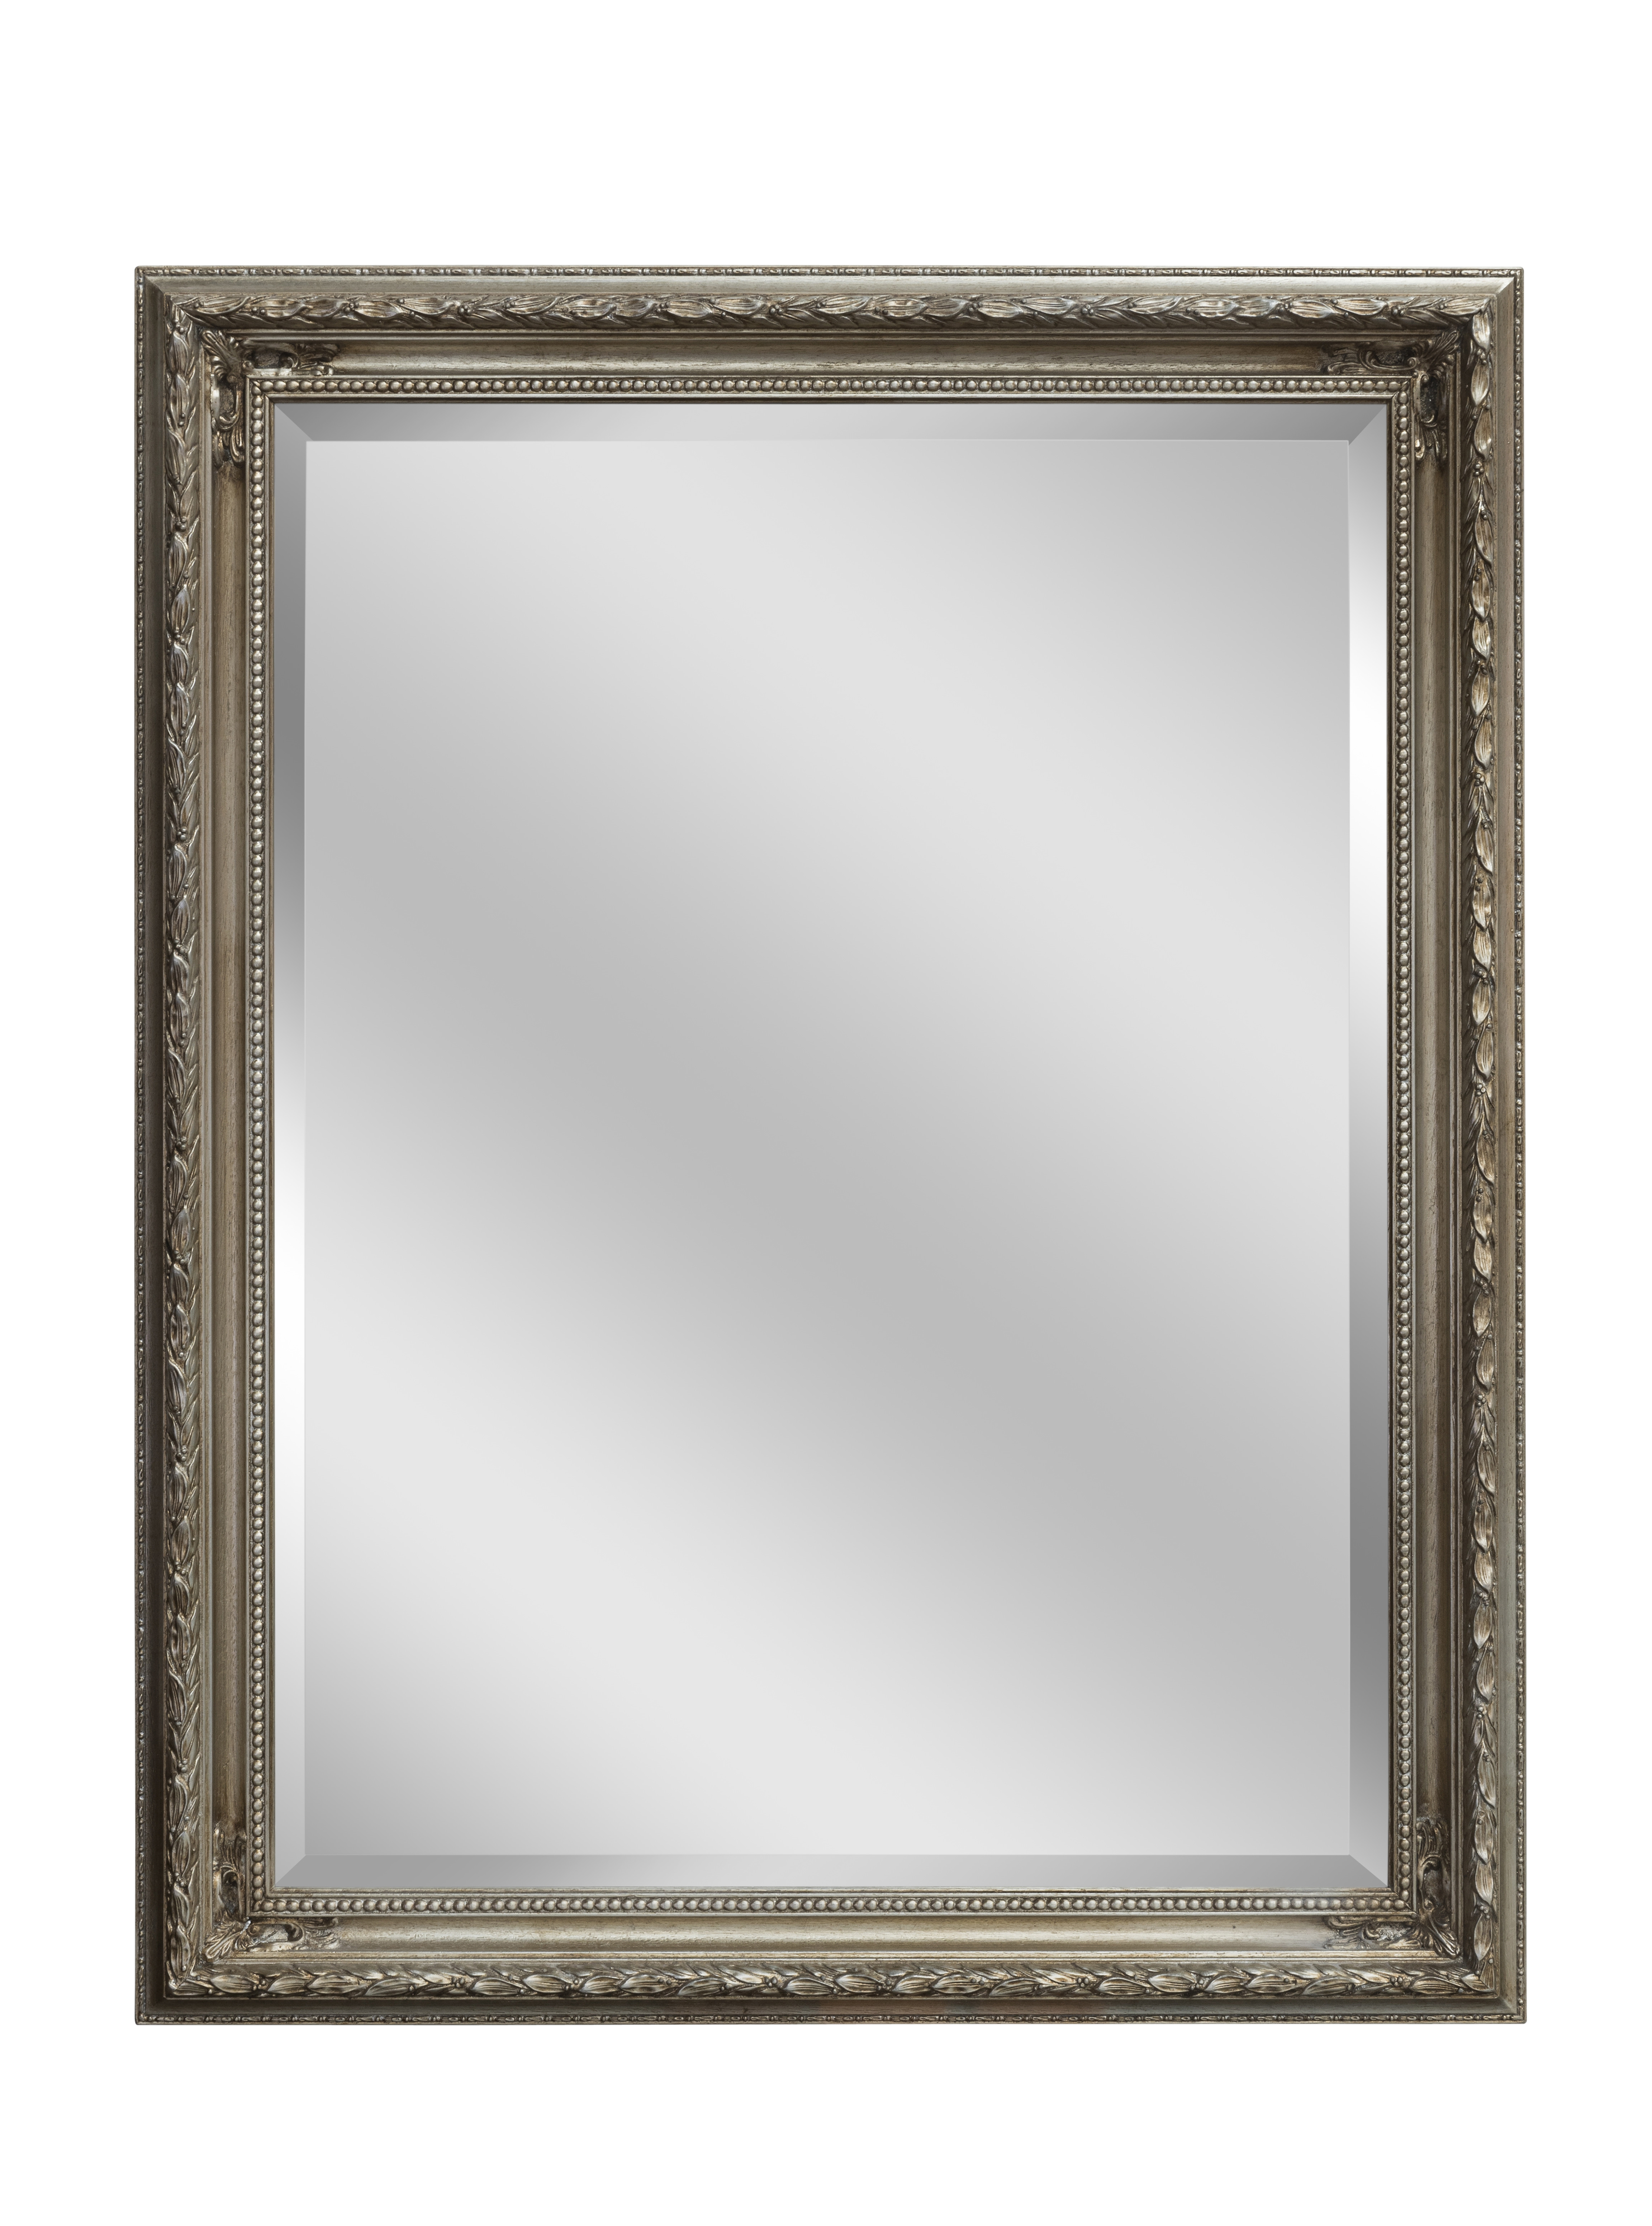 Silver Baroque Mirror Large Mirrors For Sale Panfili Mirrors Pertaining To Baroque Mirror Large (View 12 of 15)